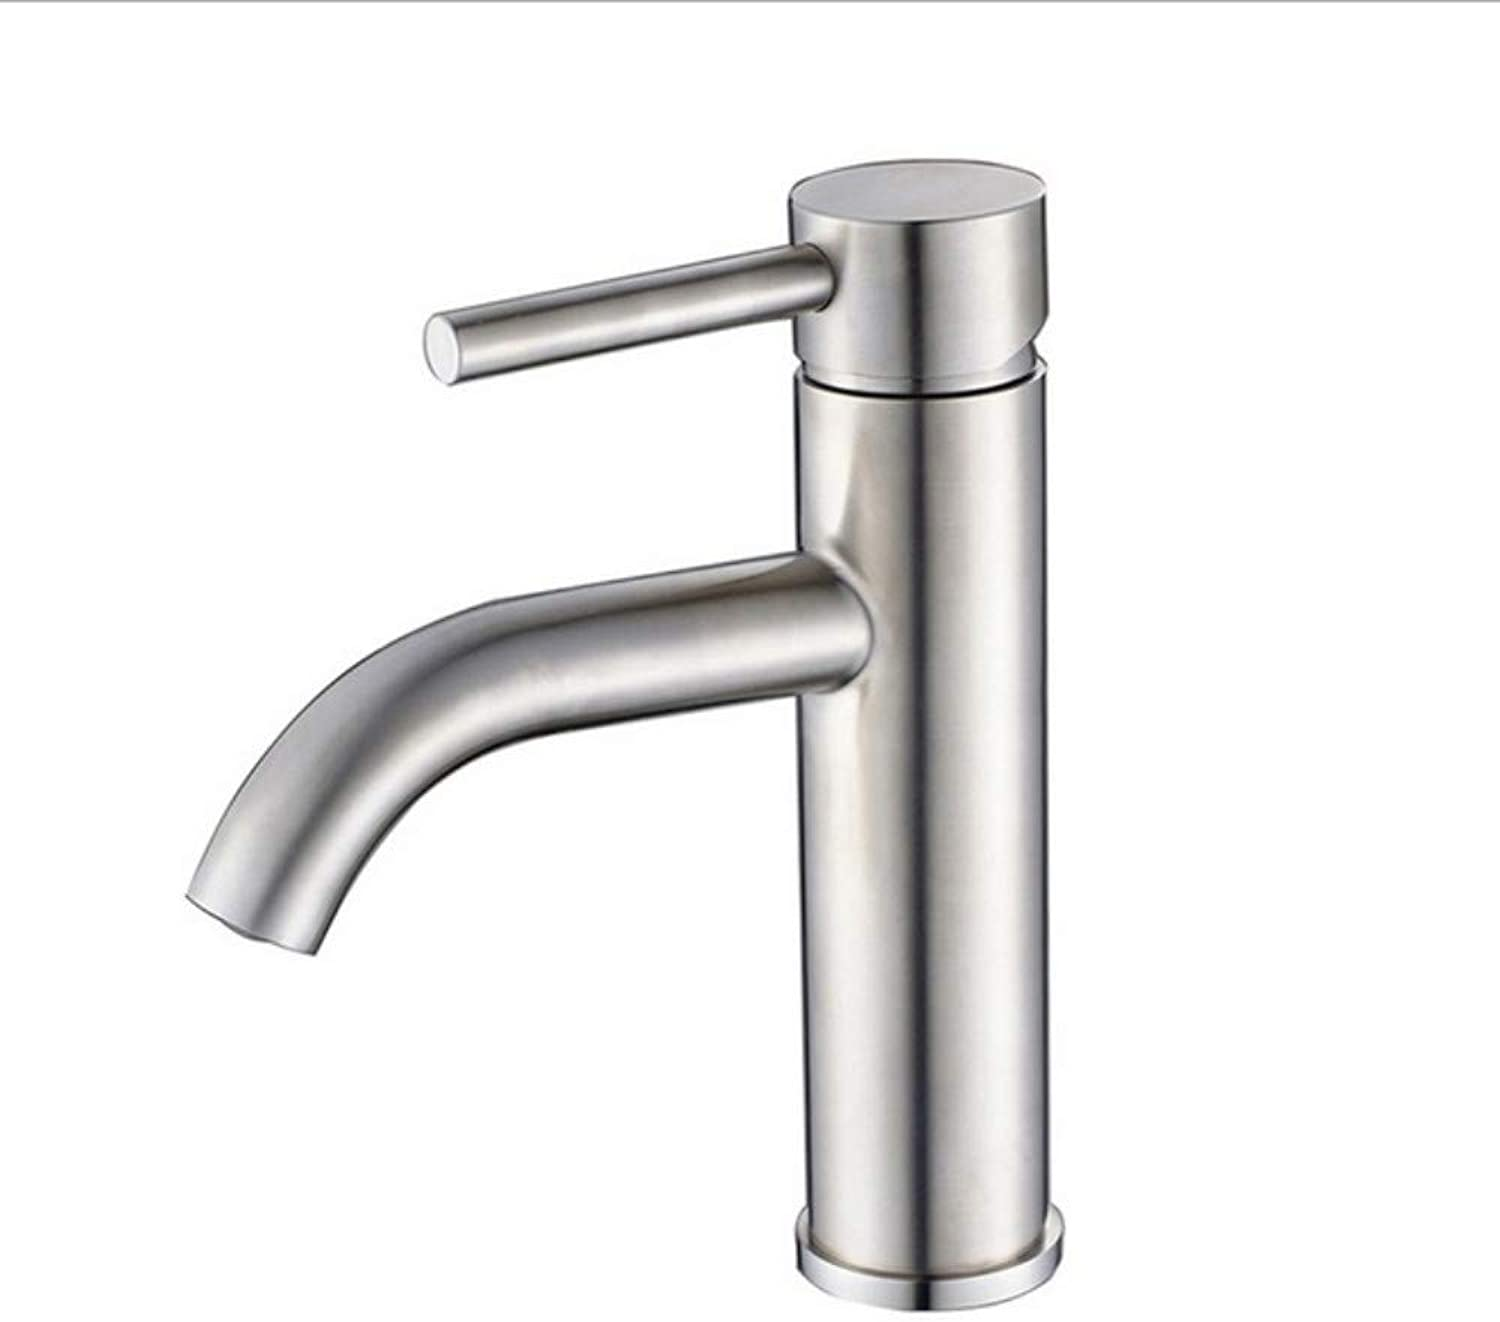 Xiujie Faucet Stainless Steel Brushed Bathroom Basin Faucet New Above Counter Basin Hot and Cold Water Mixer